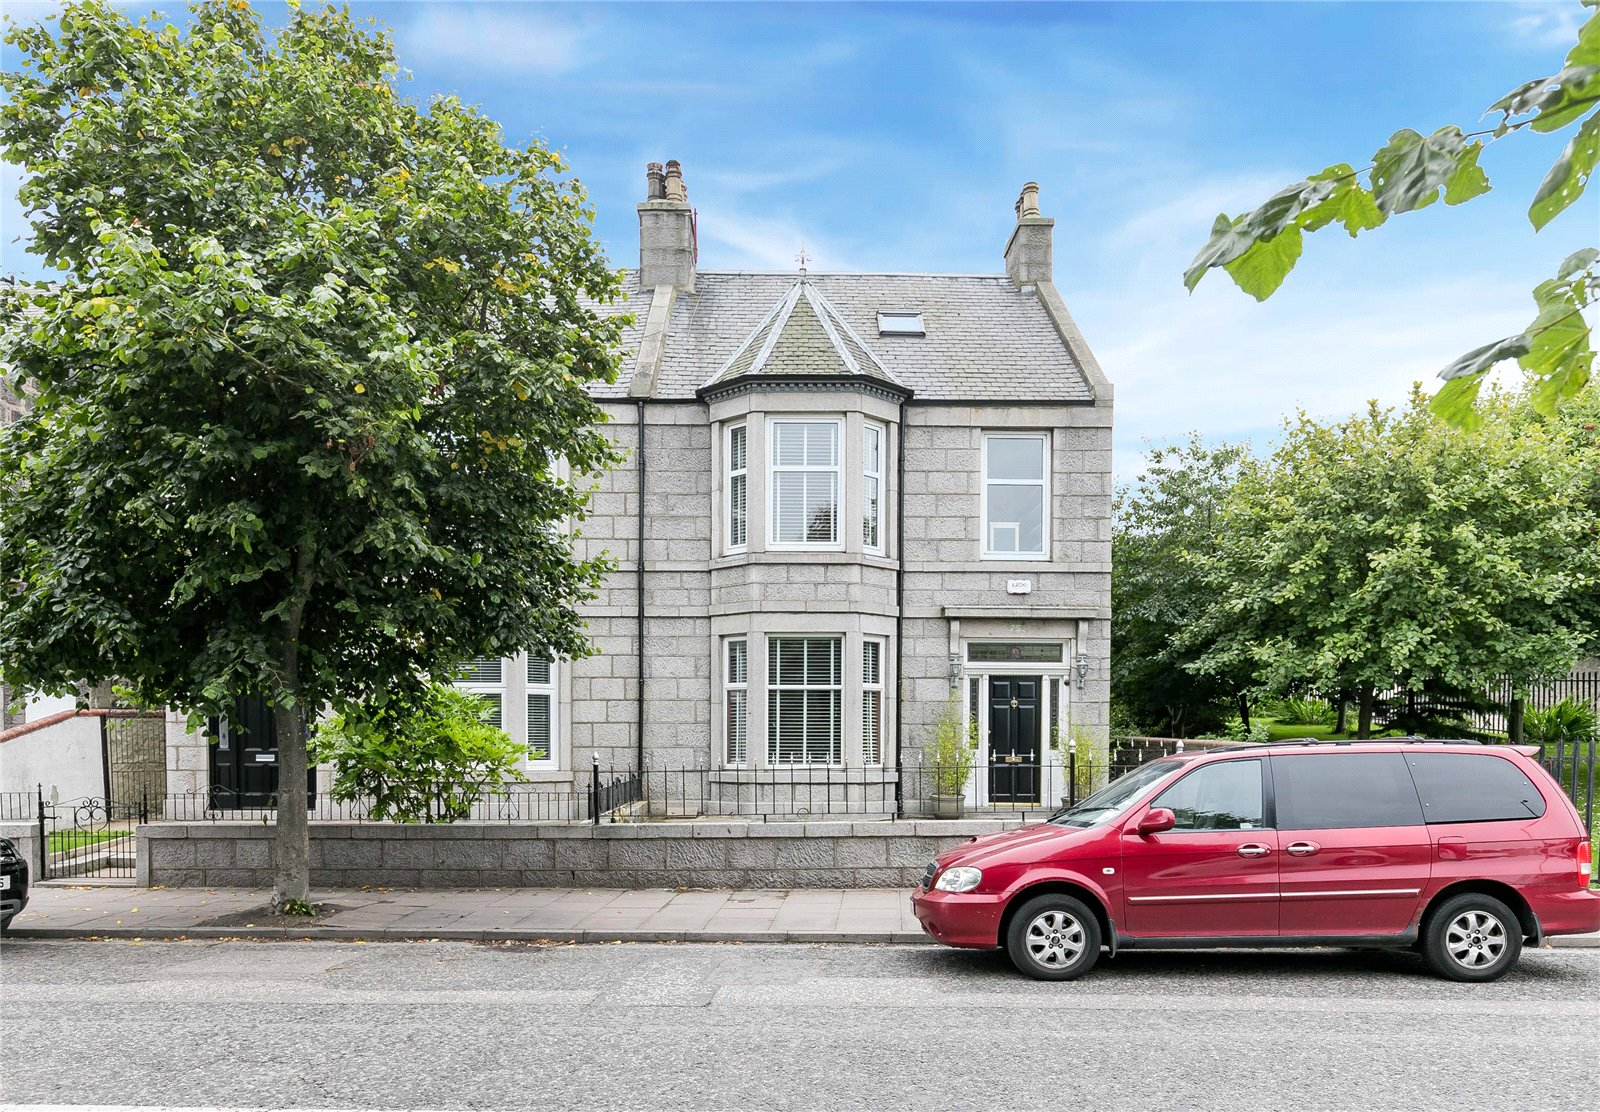 Offers over £275,000: Gorgeous six-bedroom granite house